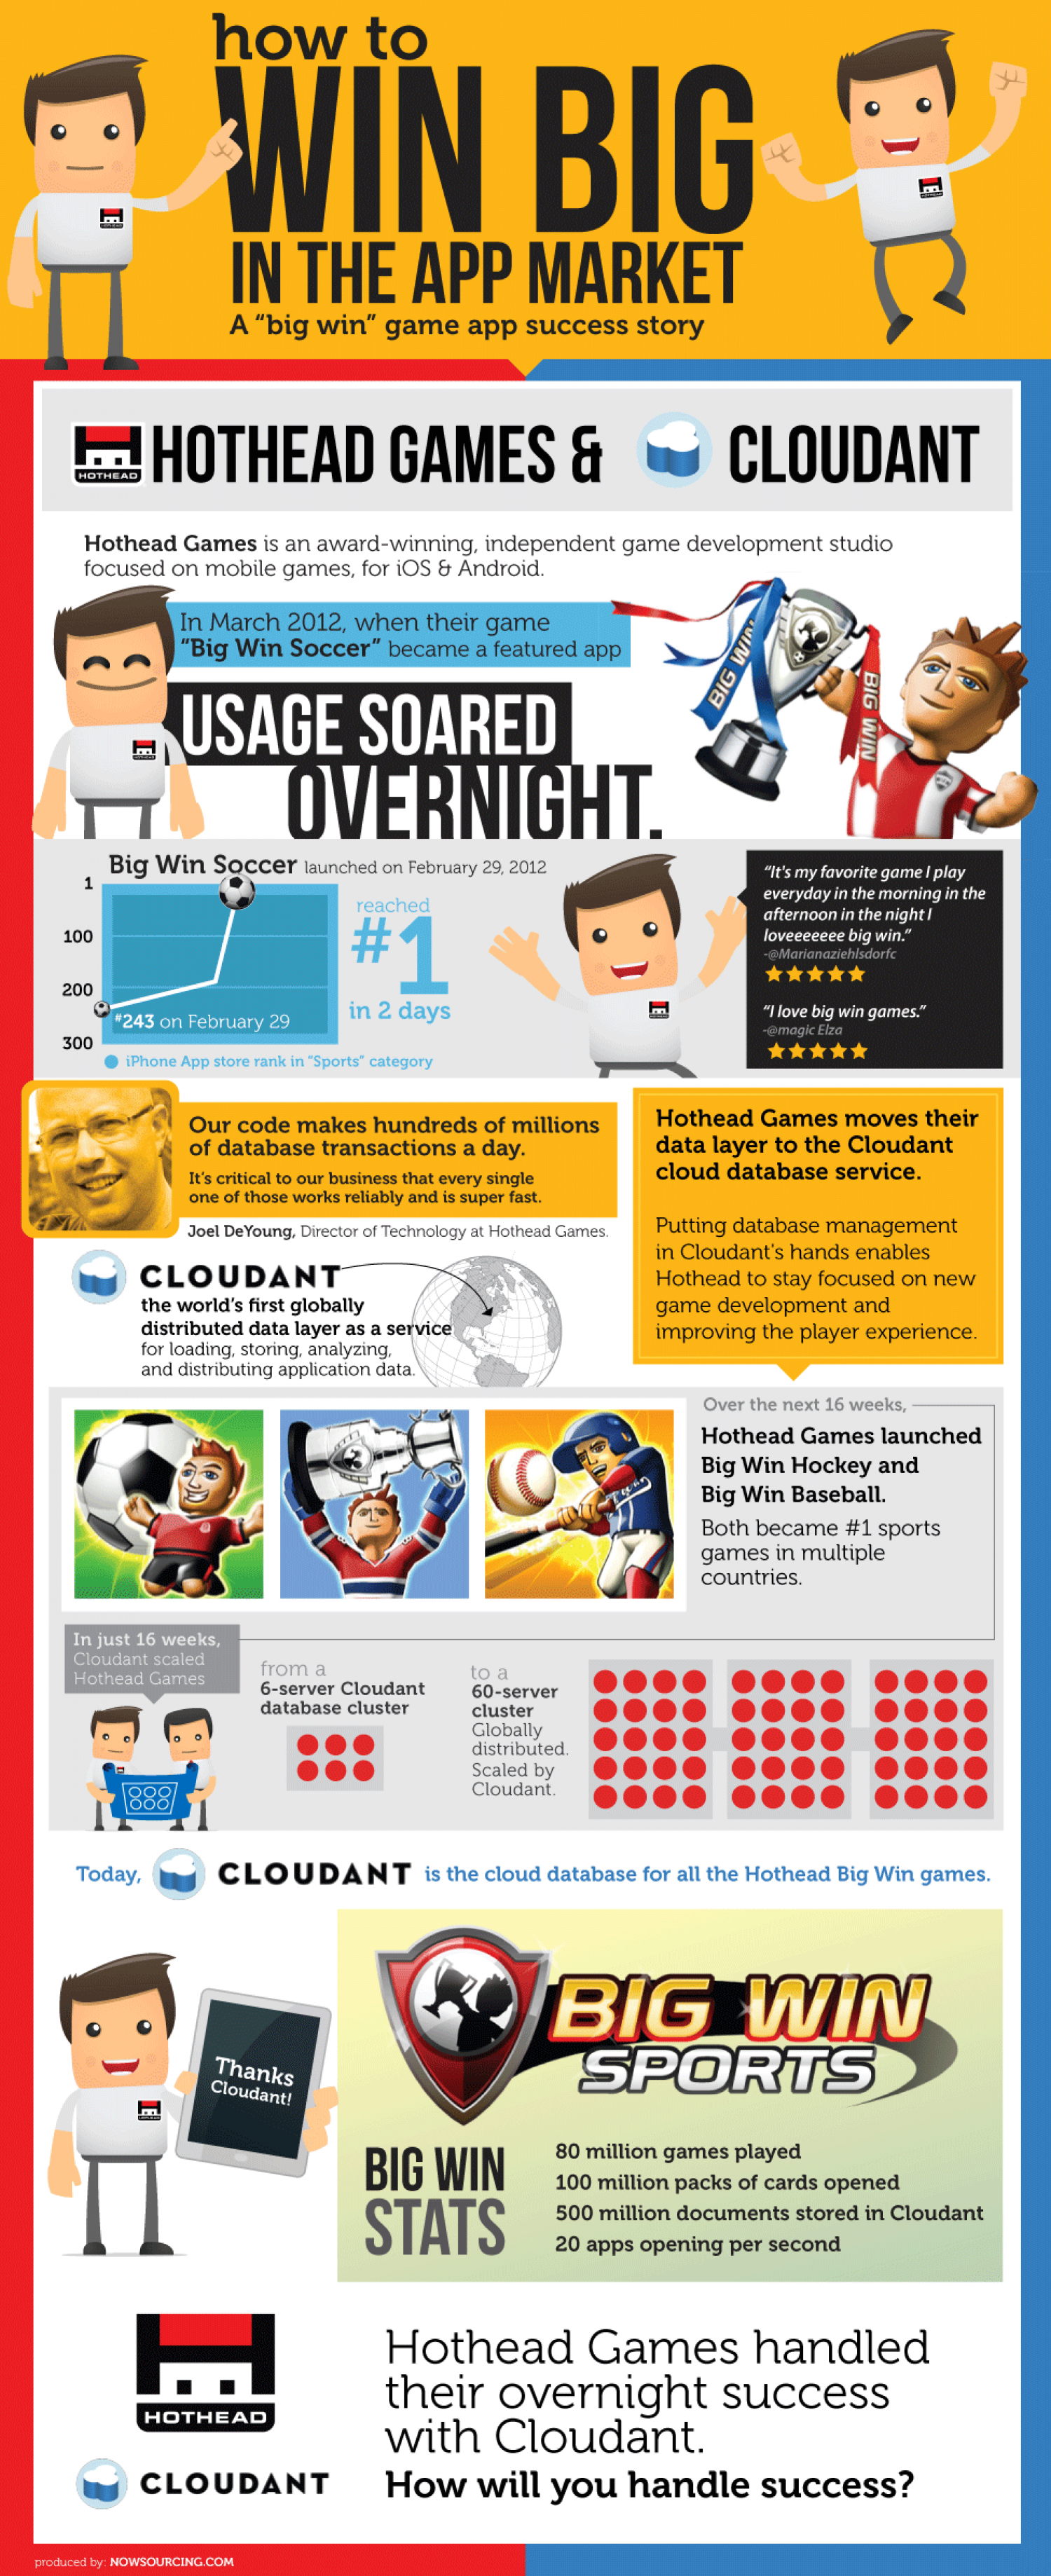 How To Win Big in the App Market Infographic